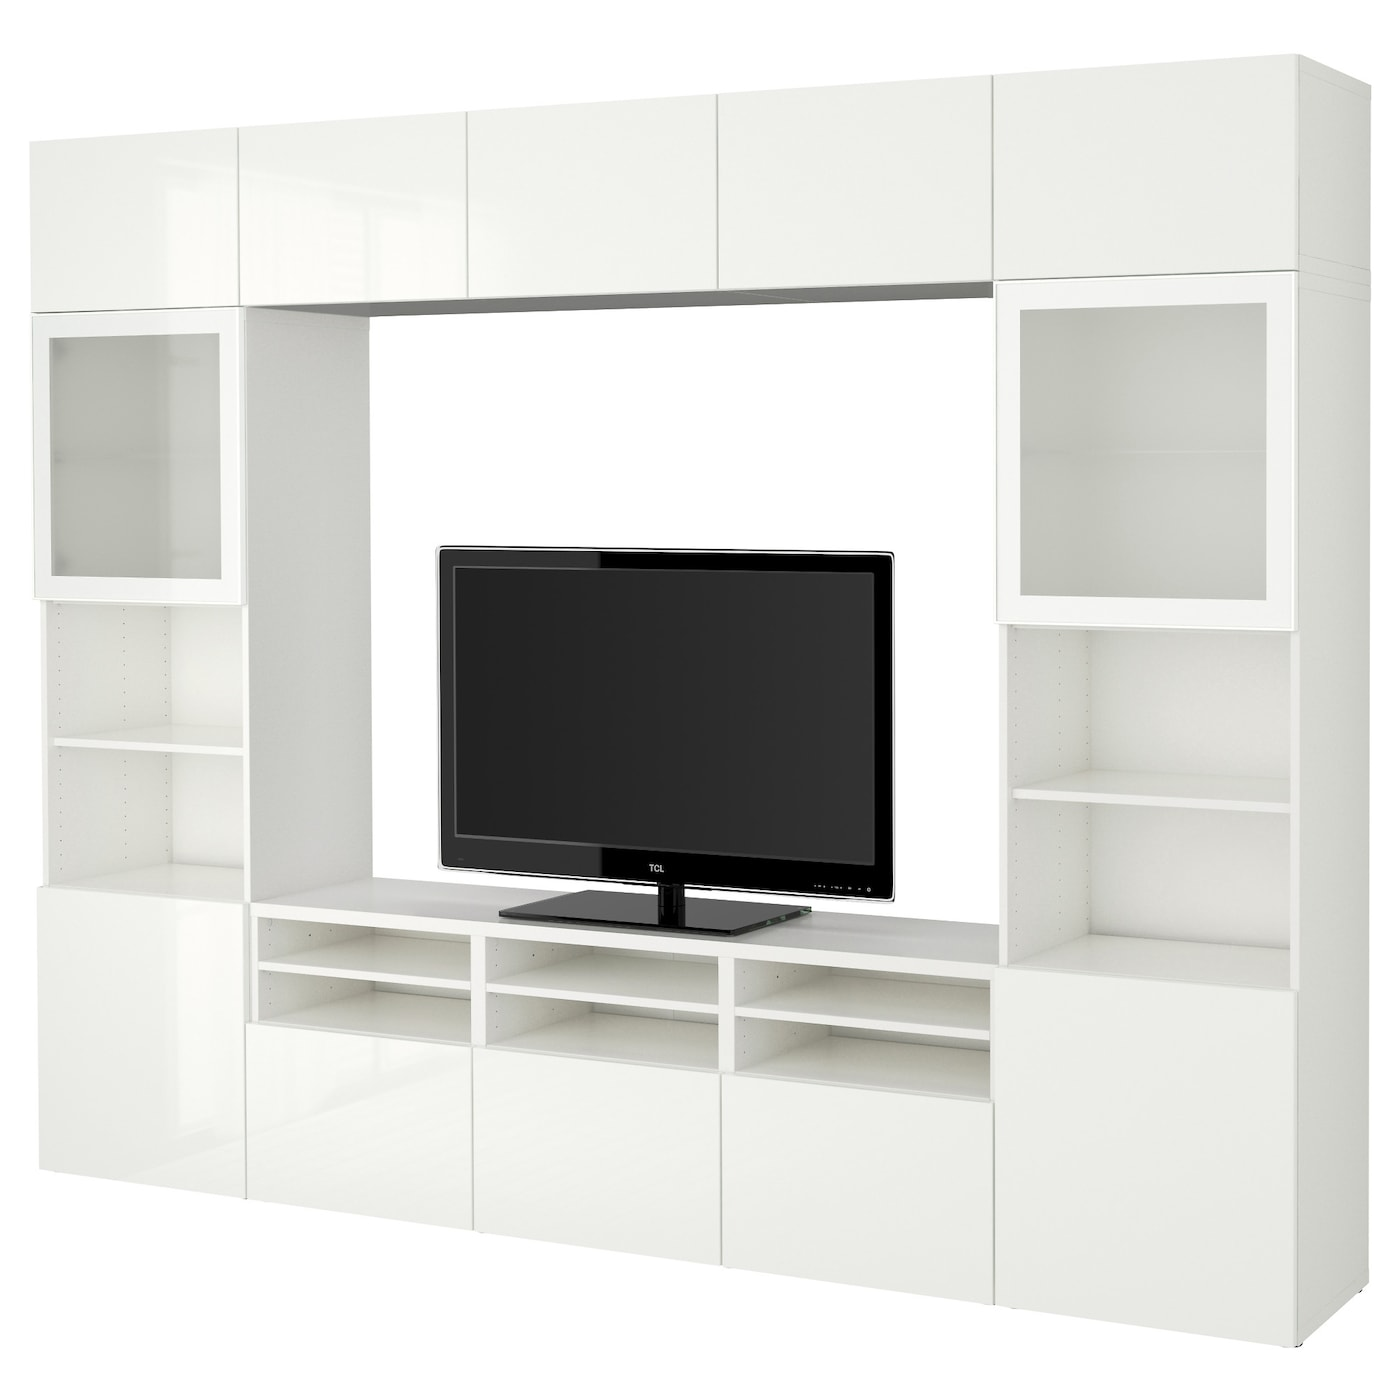 best tv storage combination glass doors white selsviken high gloss white frosted glass. Black Bedroom Furniture Sets. Home Design Ideas